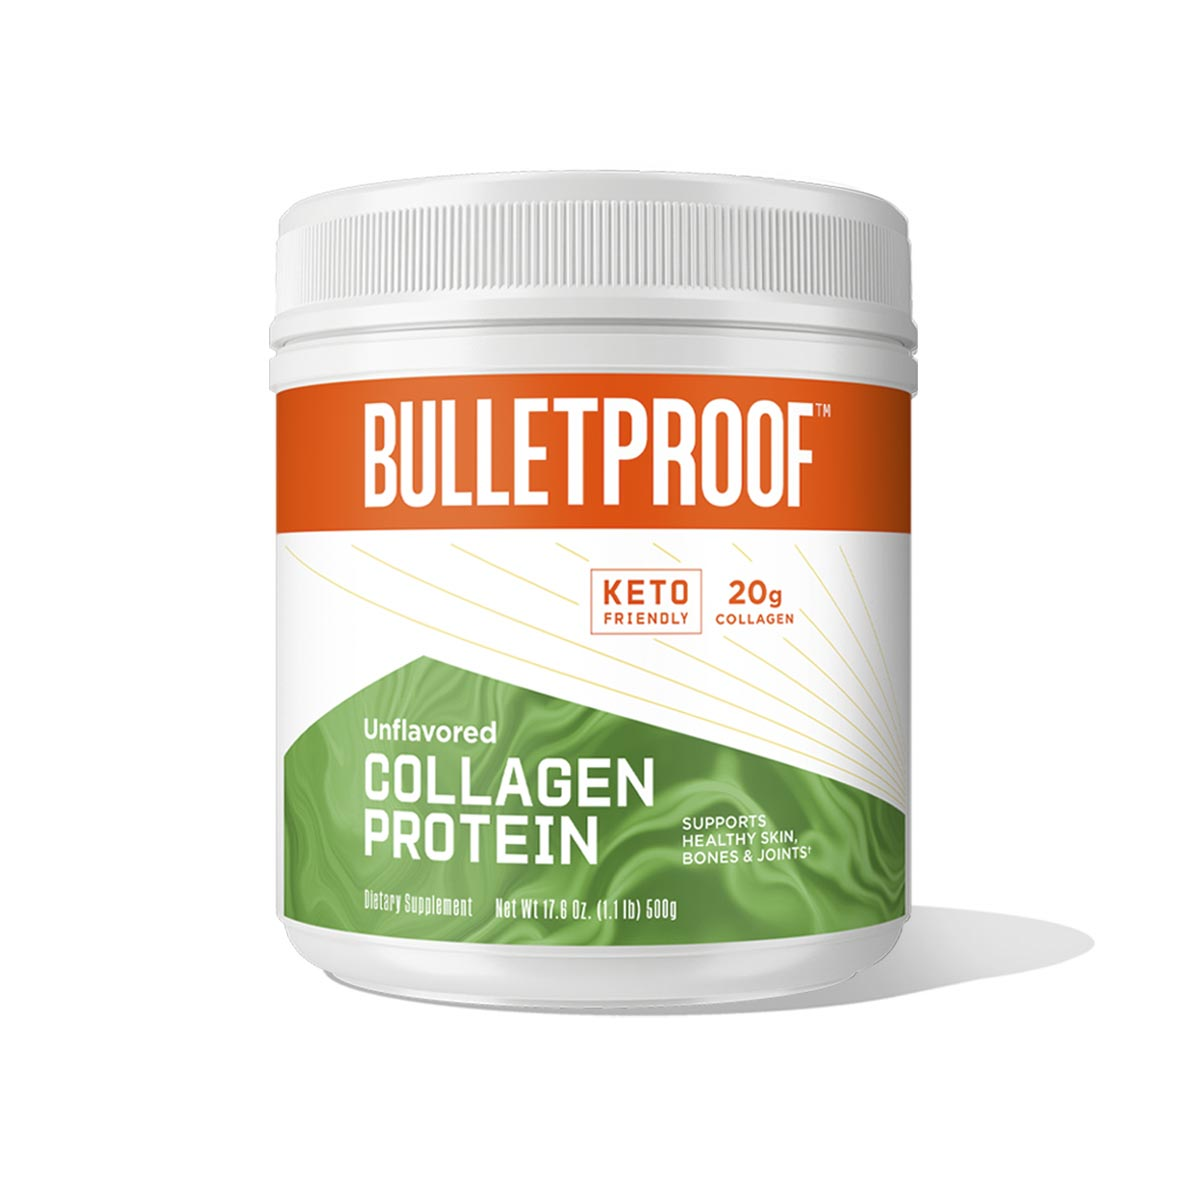 Bulletproof Unflavored Collagen Protein - 17.6 oz